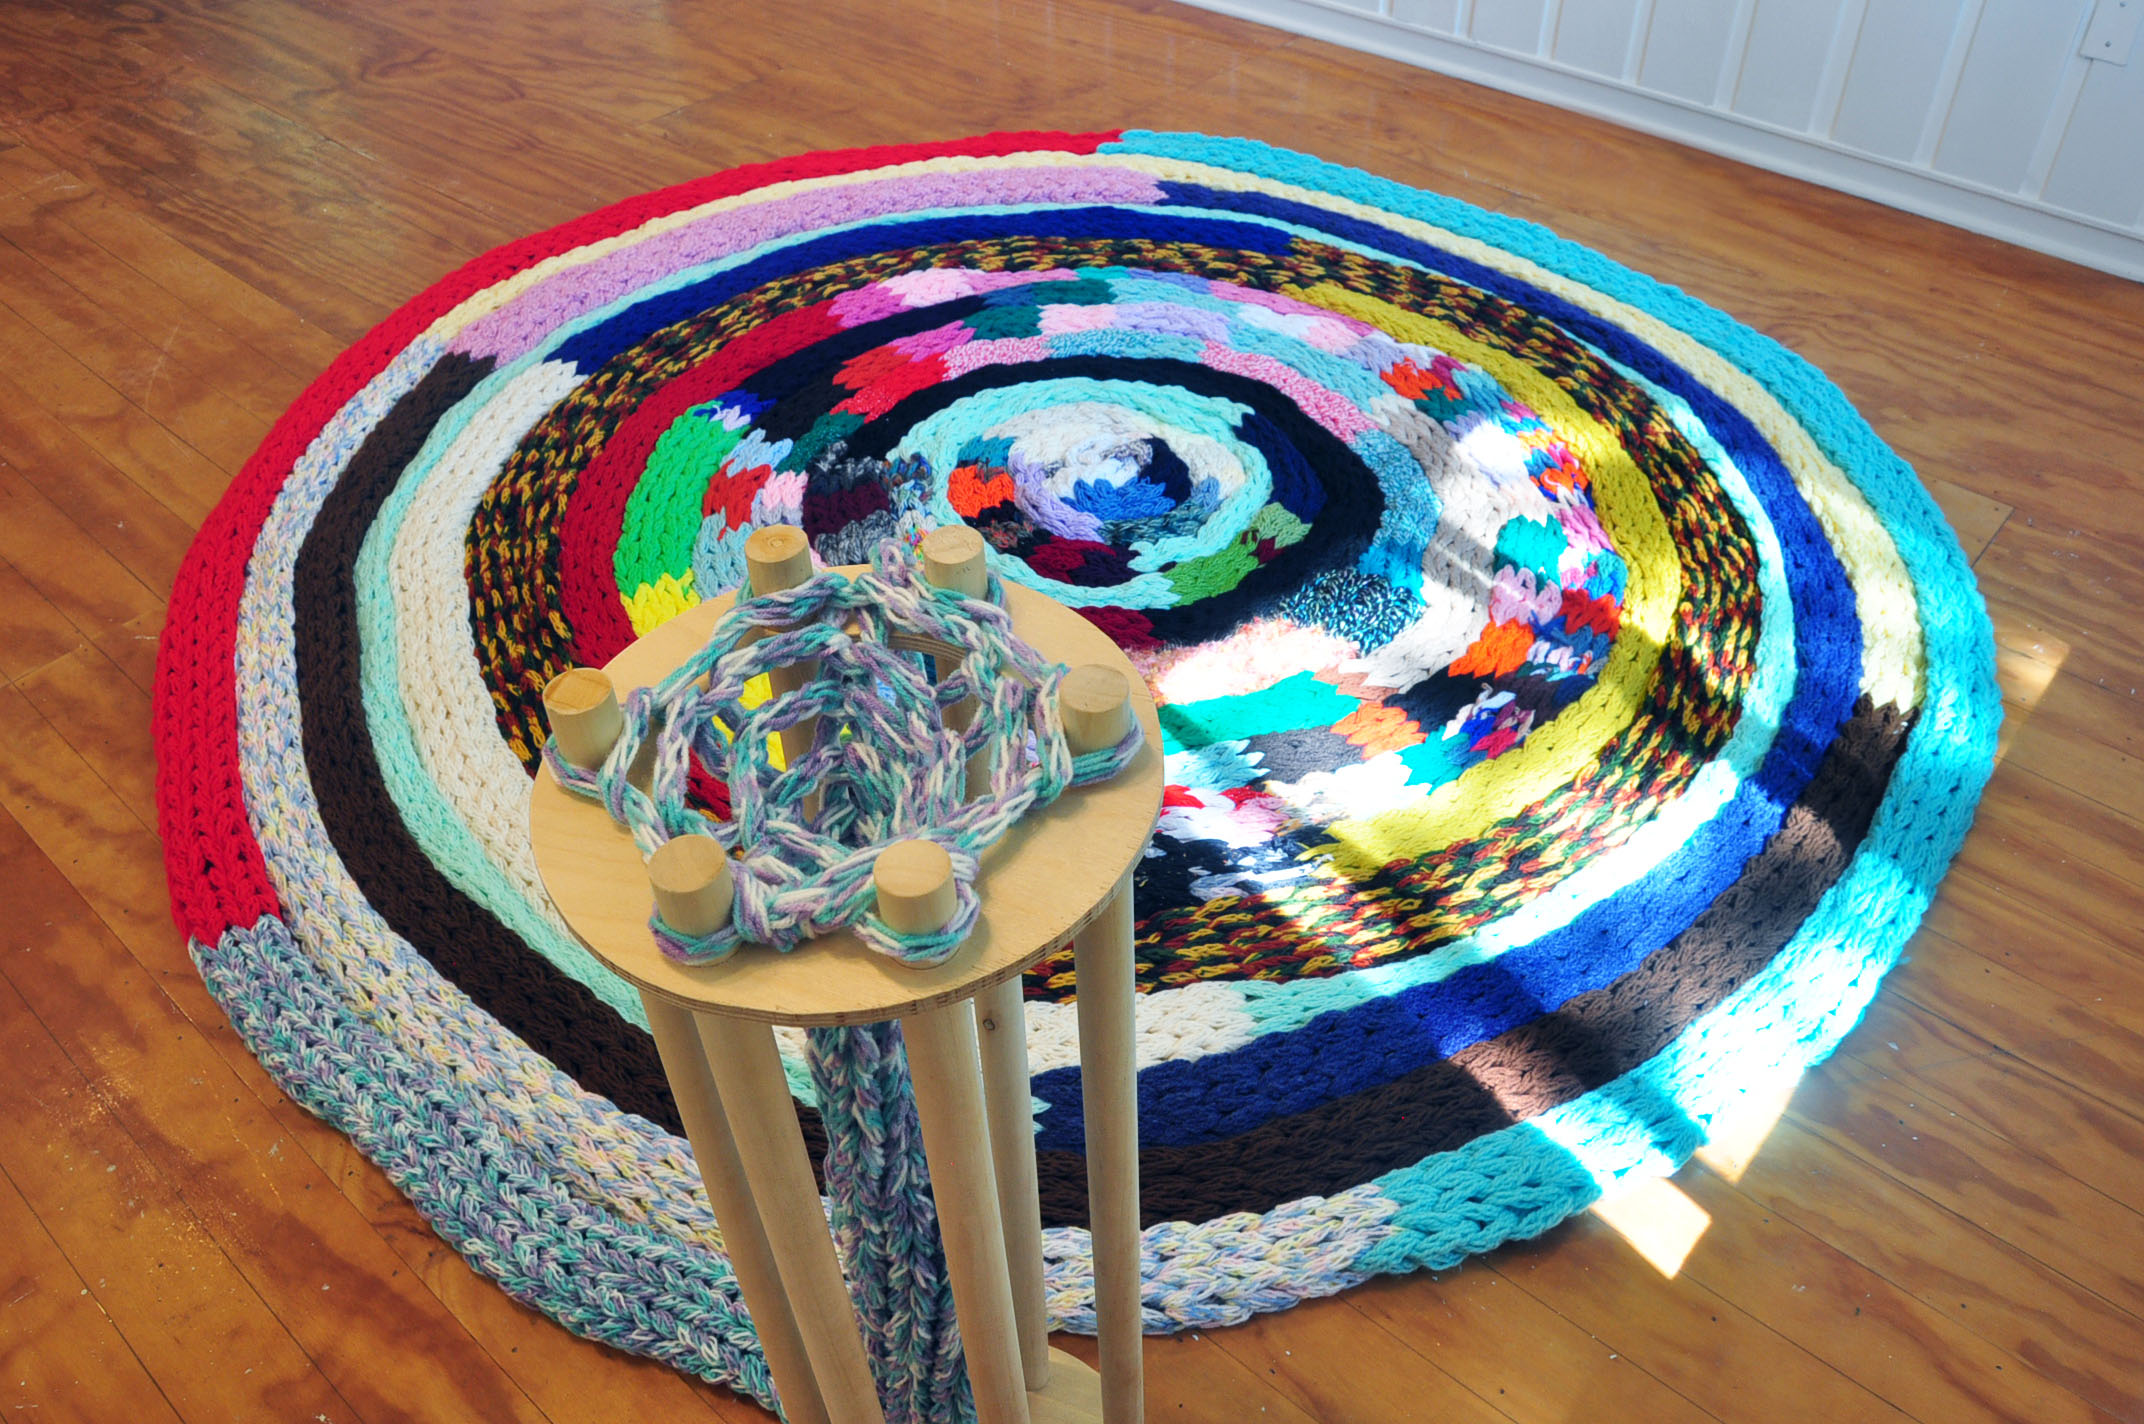 The Machine: Knitting Ouroboros , 2019, yarn, wood, approx. 10ft Wide in Diameter